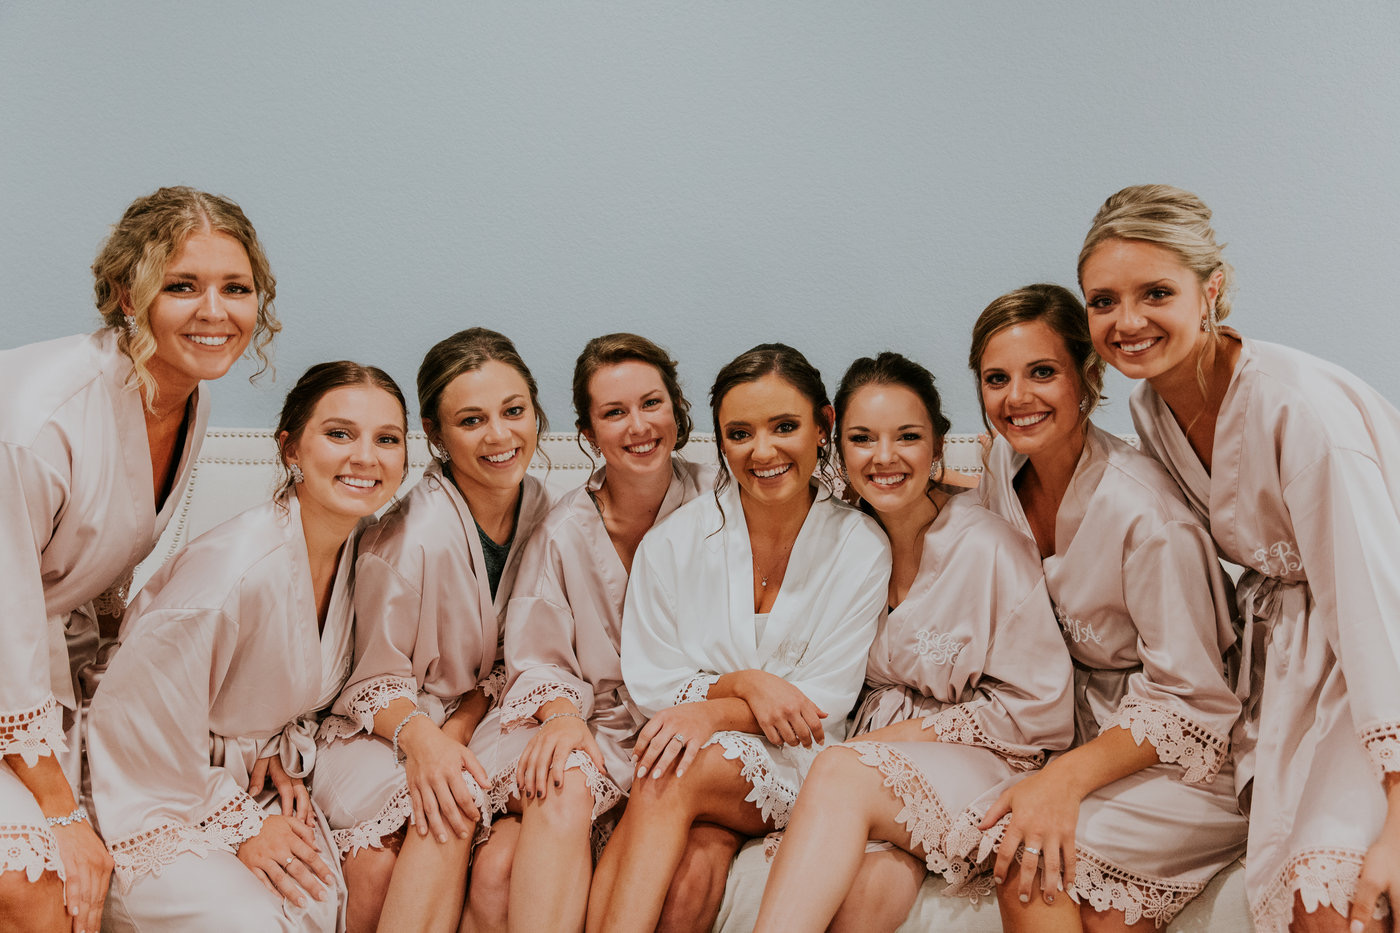 The Best Bridesmaid Robes For Your Bridal Party in 2020